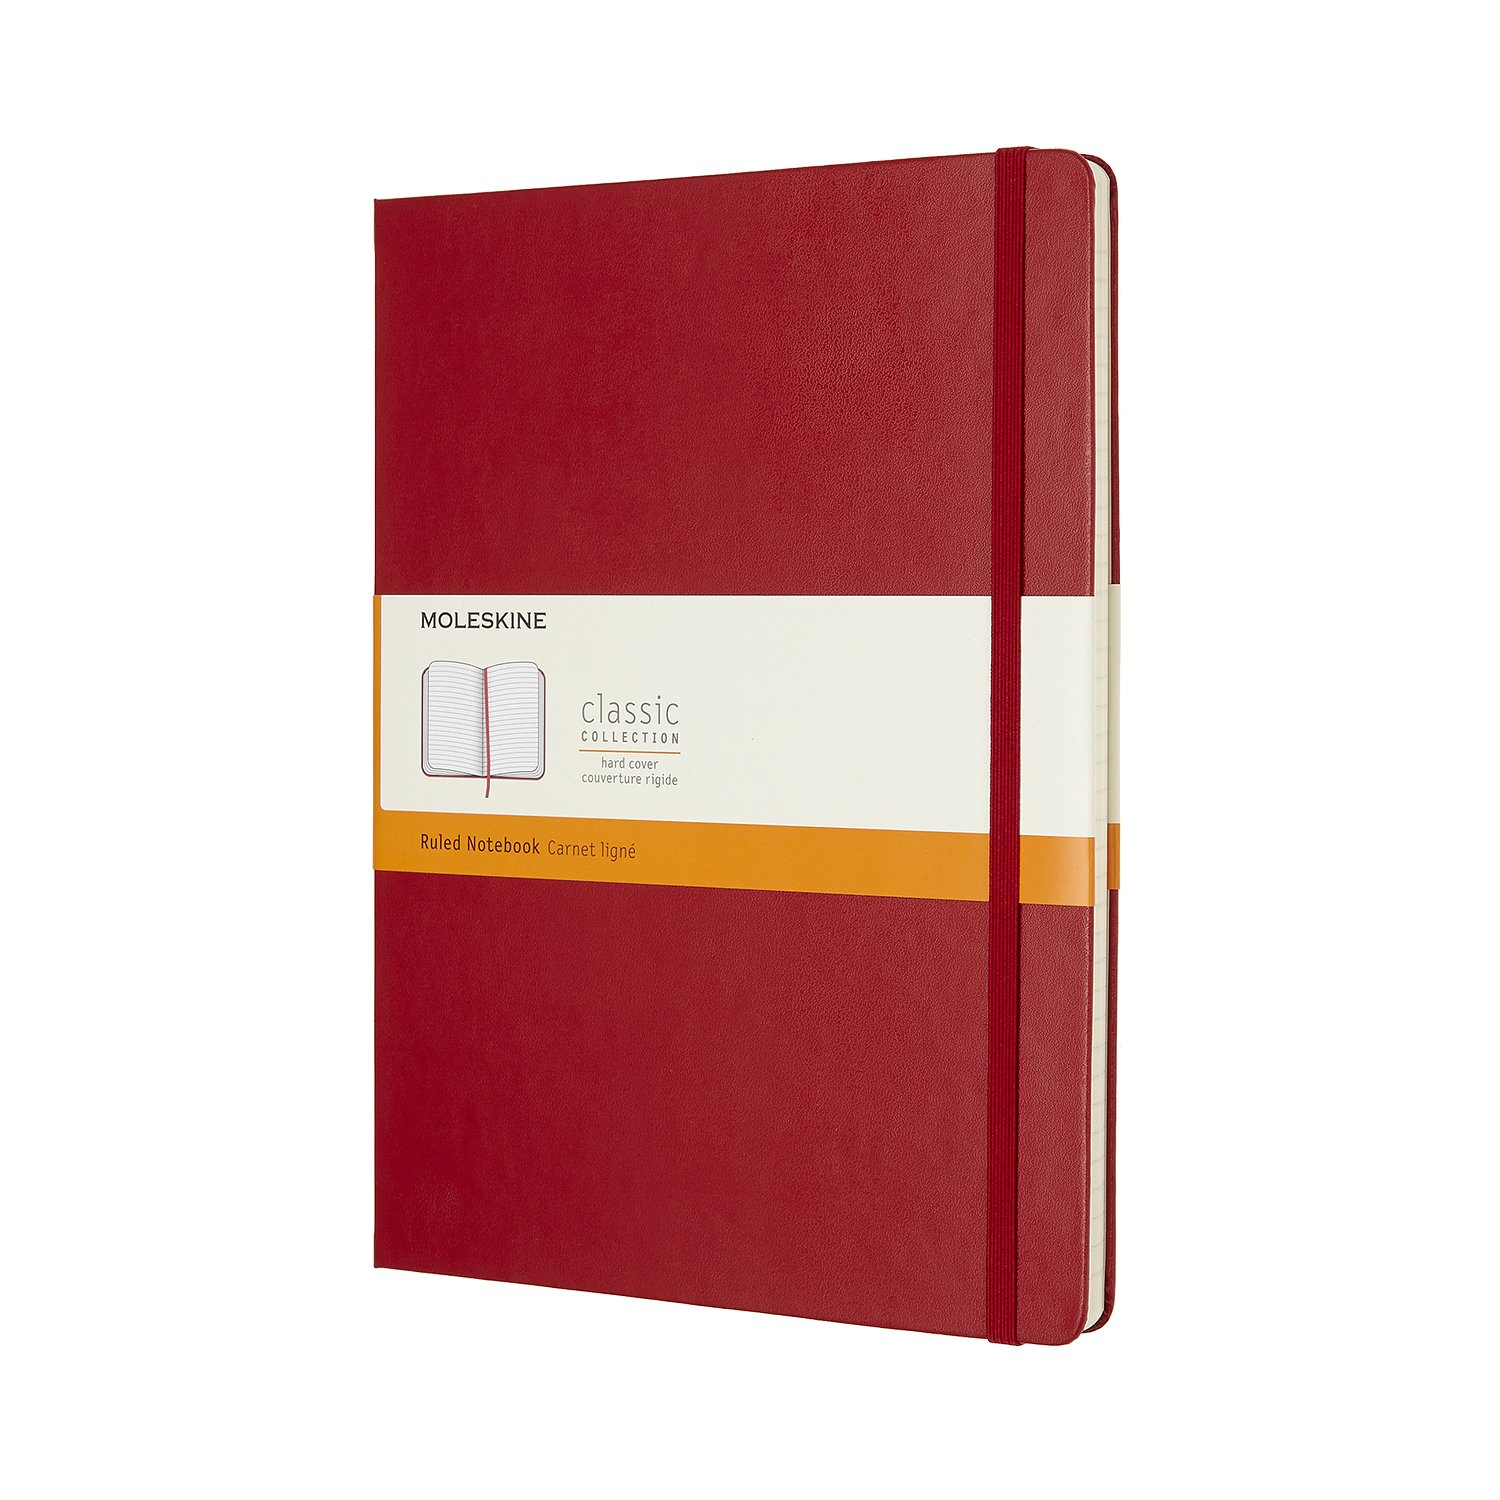 Moleskine Classic Notebook Xl Ruled Scarlet Red Hardcover..